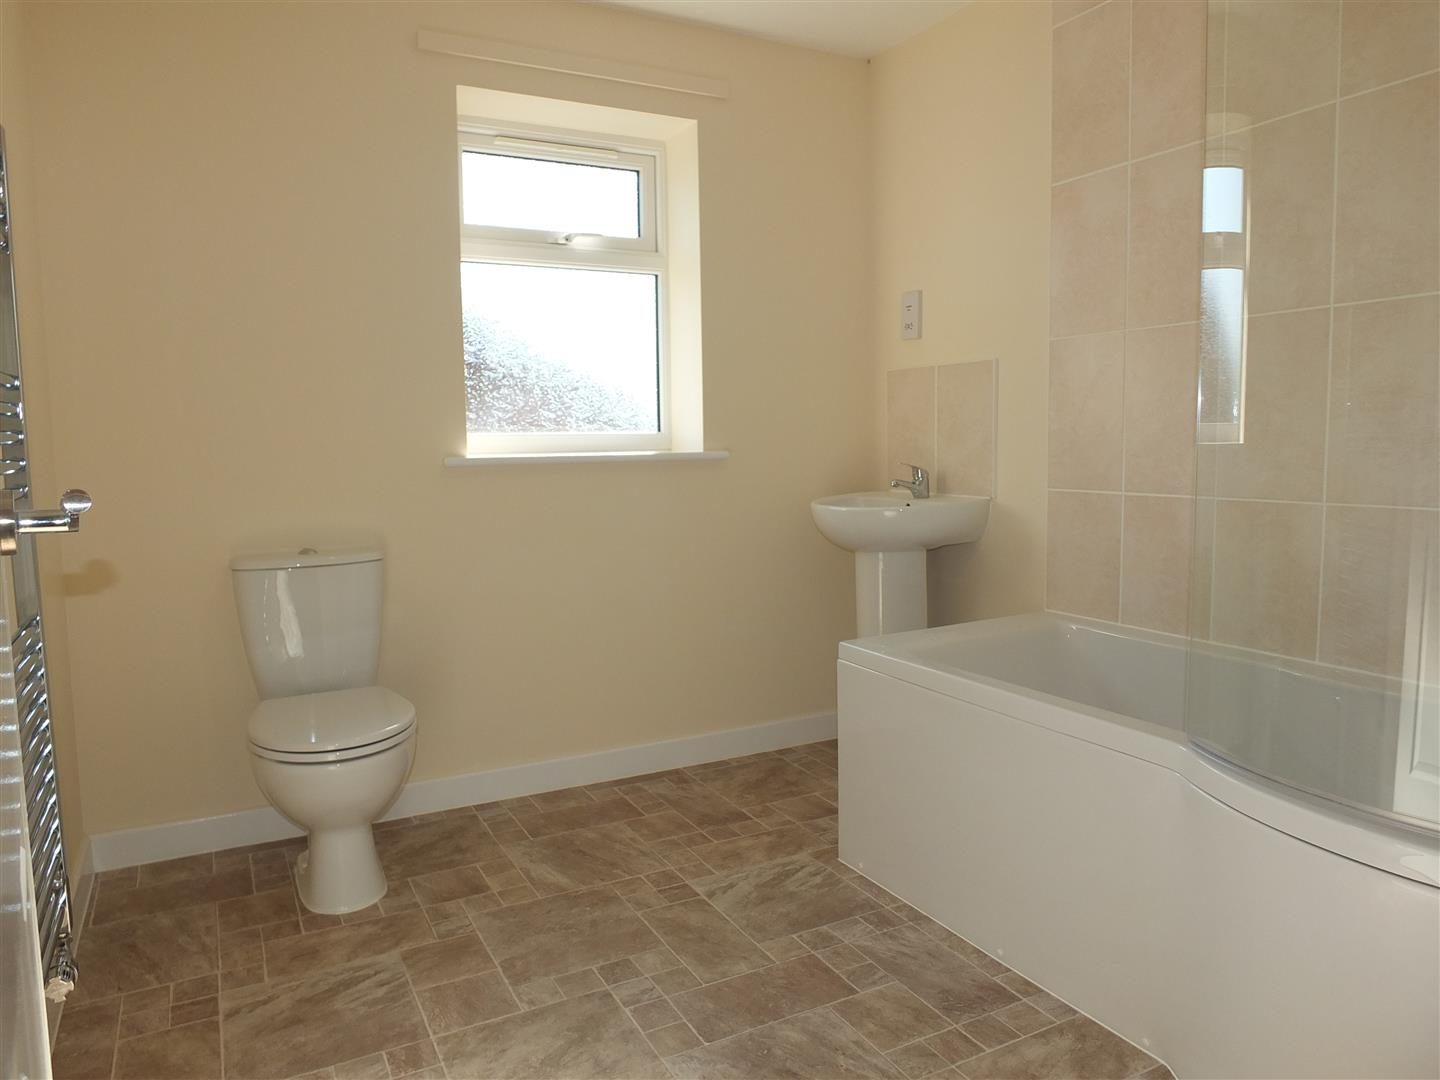 2 bed house to rent in Long Sutton, PE12 9LE  - Property Image 9